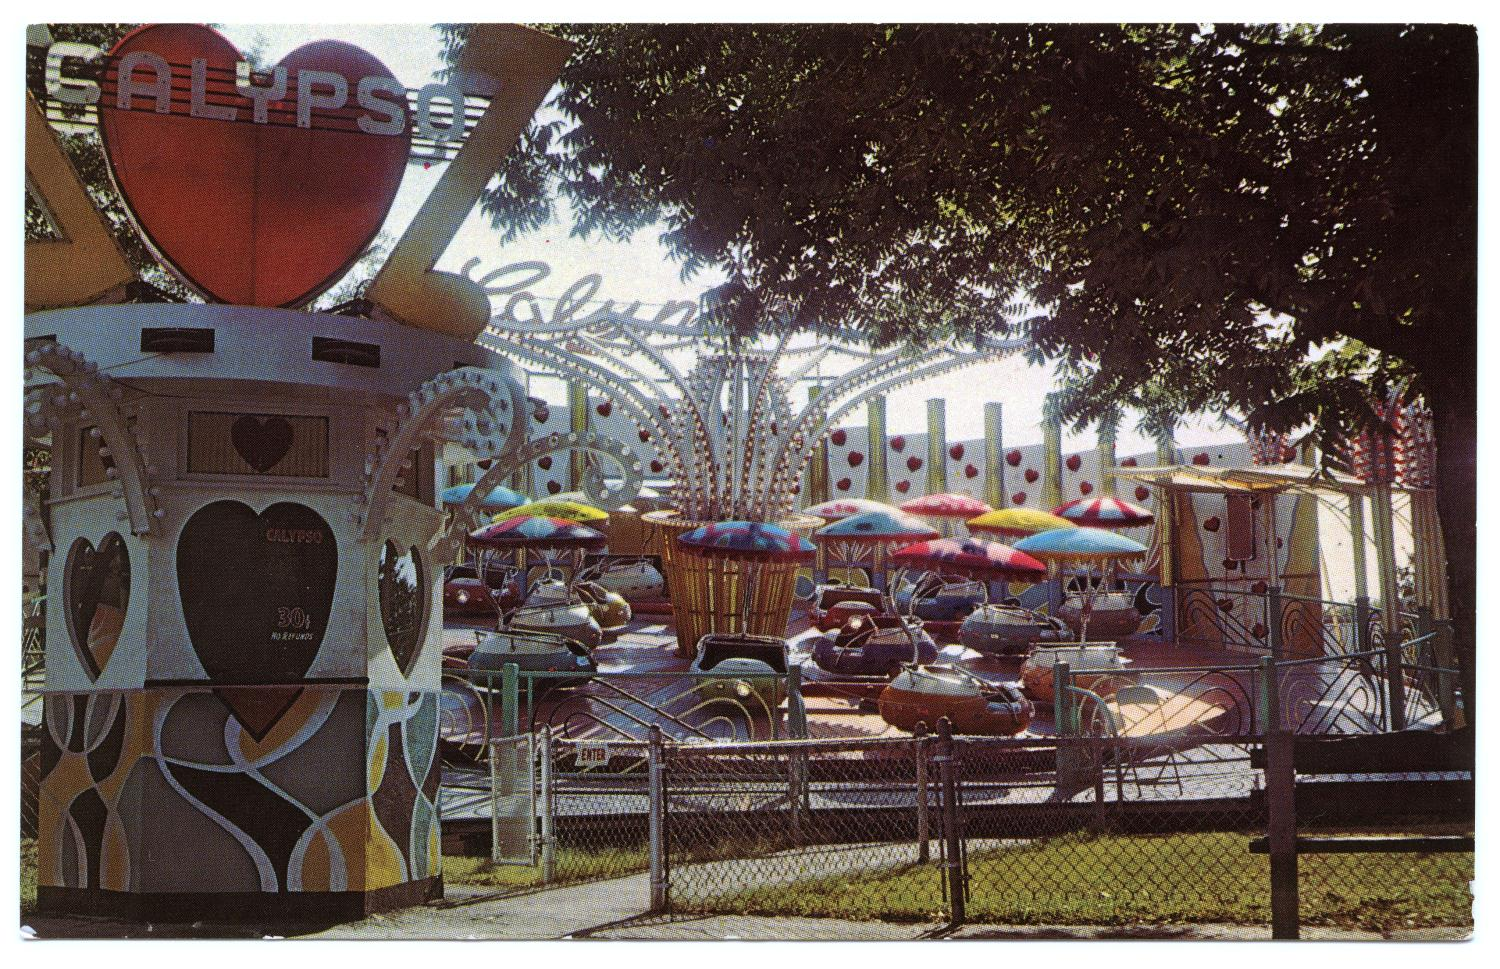 The Calypso, HemisFair's amusement park ride                                                                                                      [Sequence #]: 1 of 2